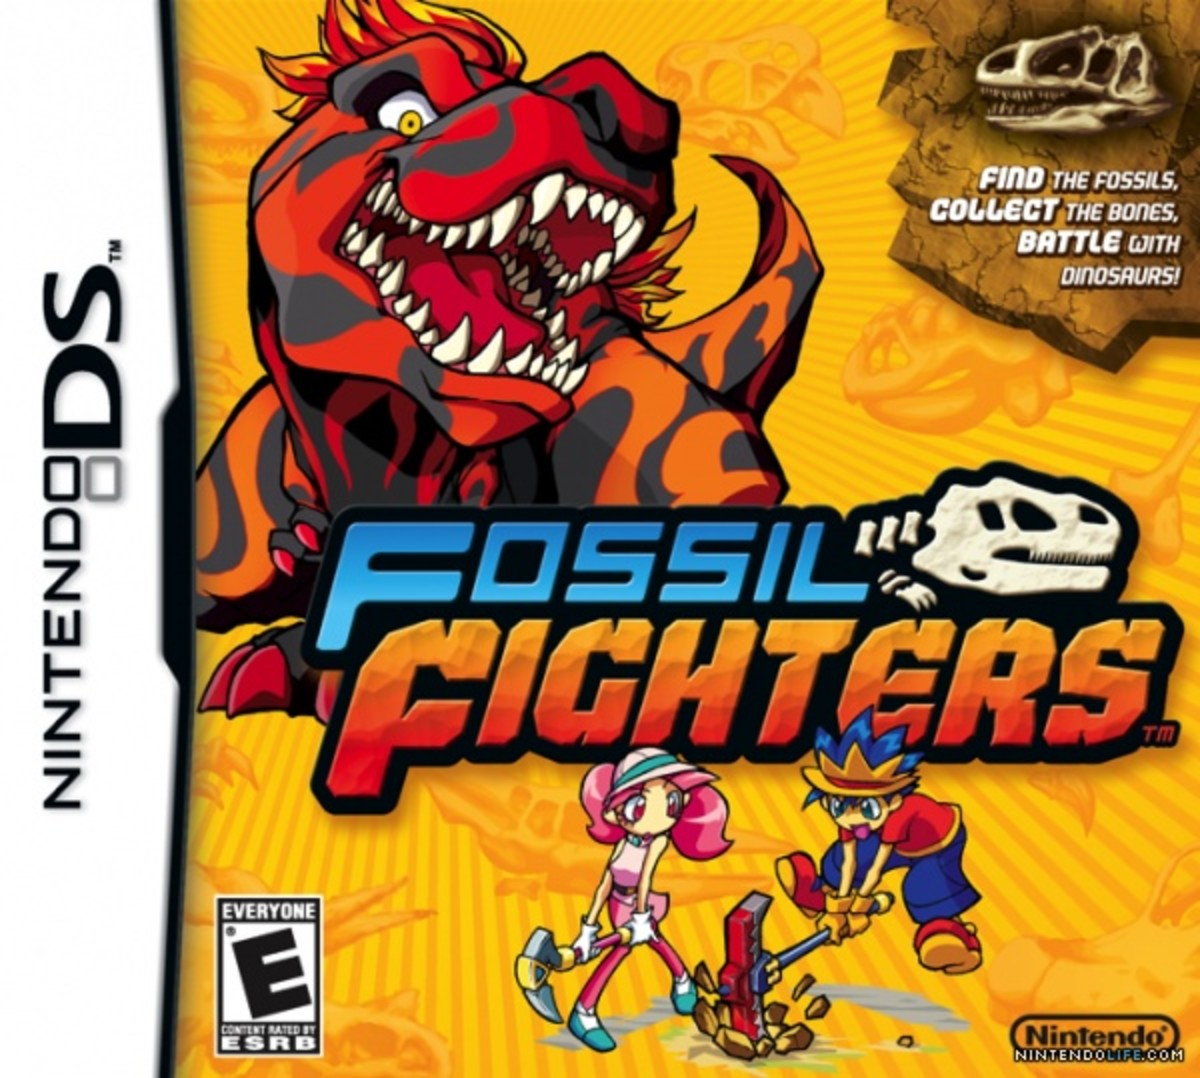 Fossil Fighters – Nintendo DS Game Review